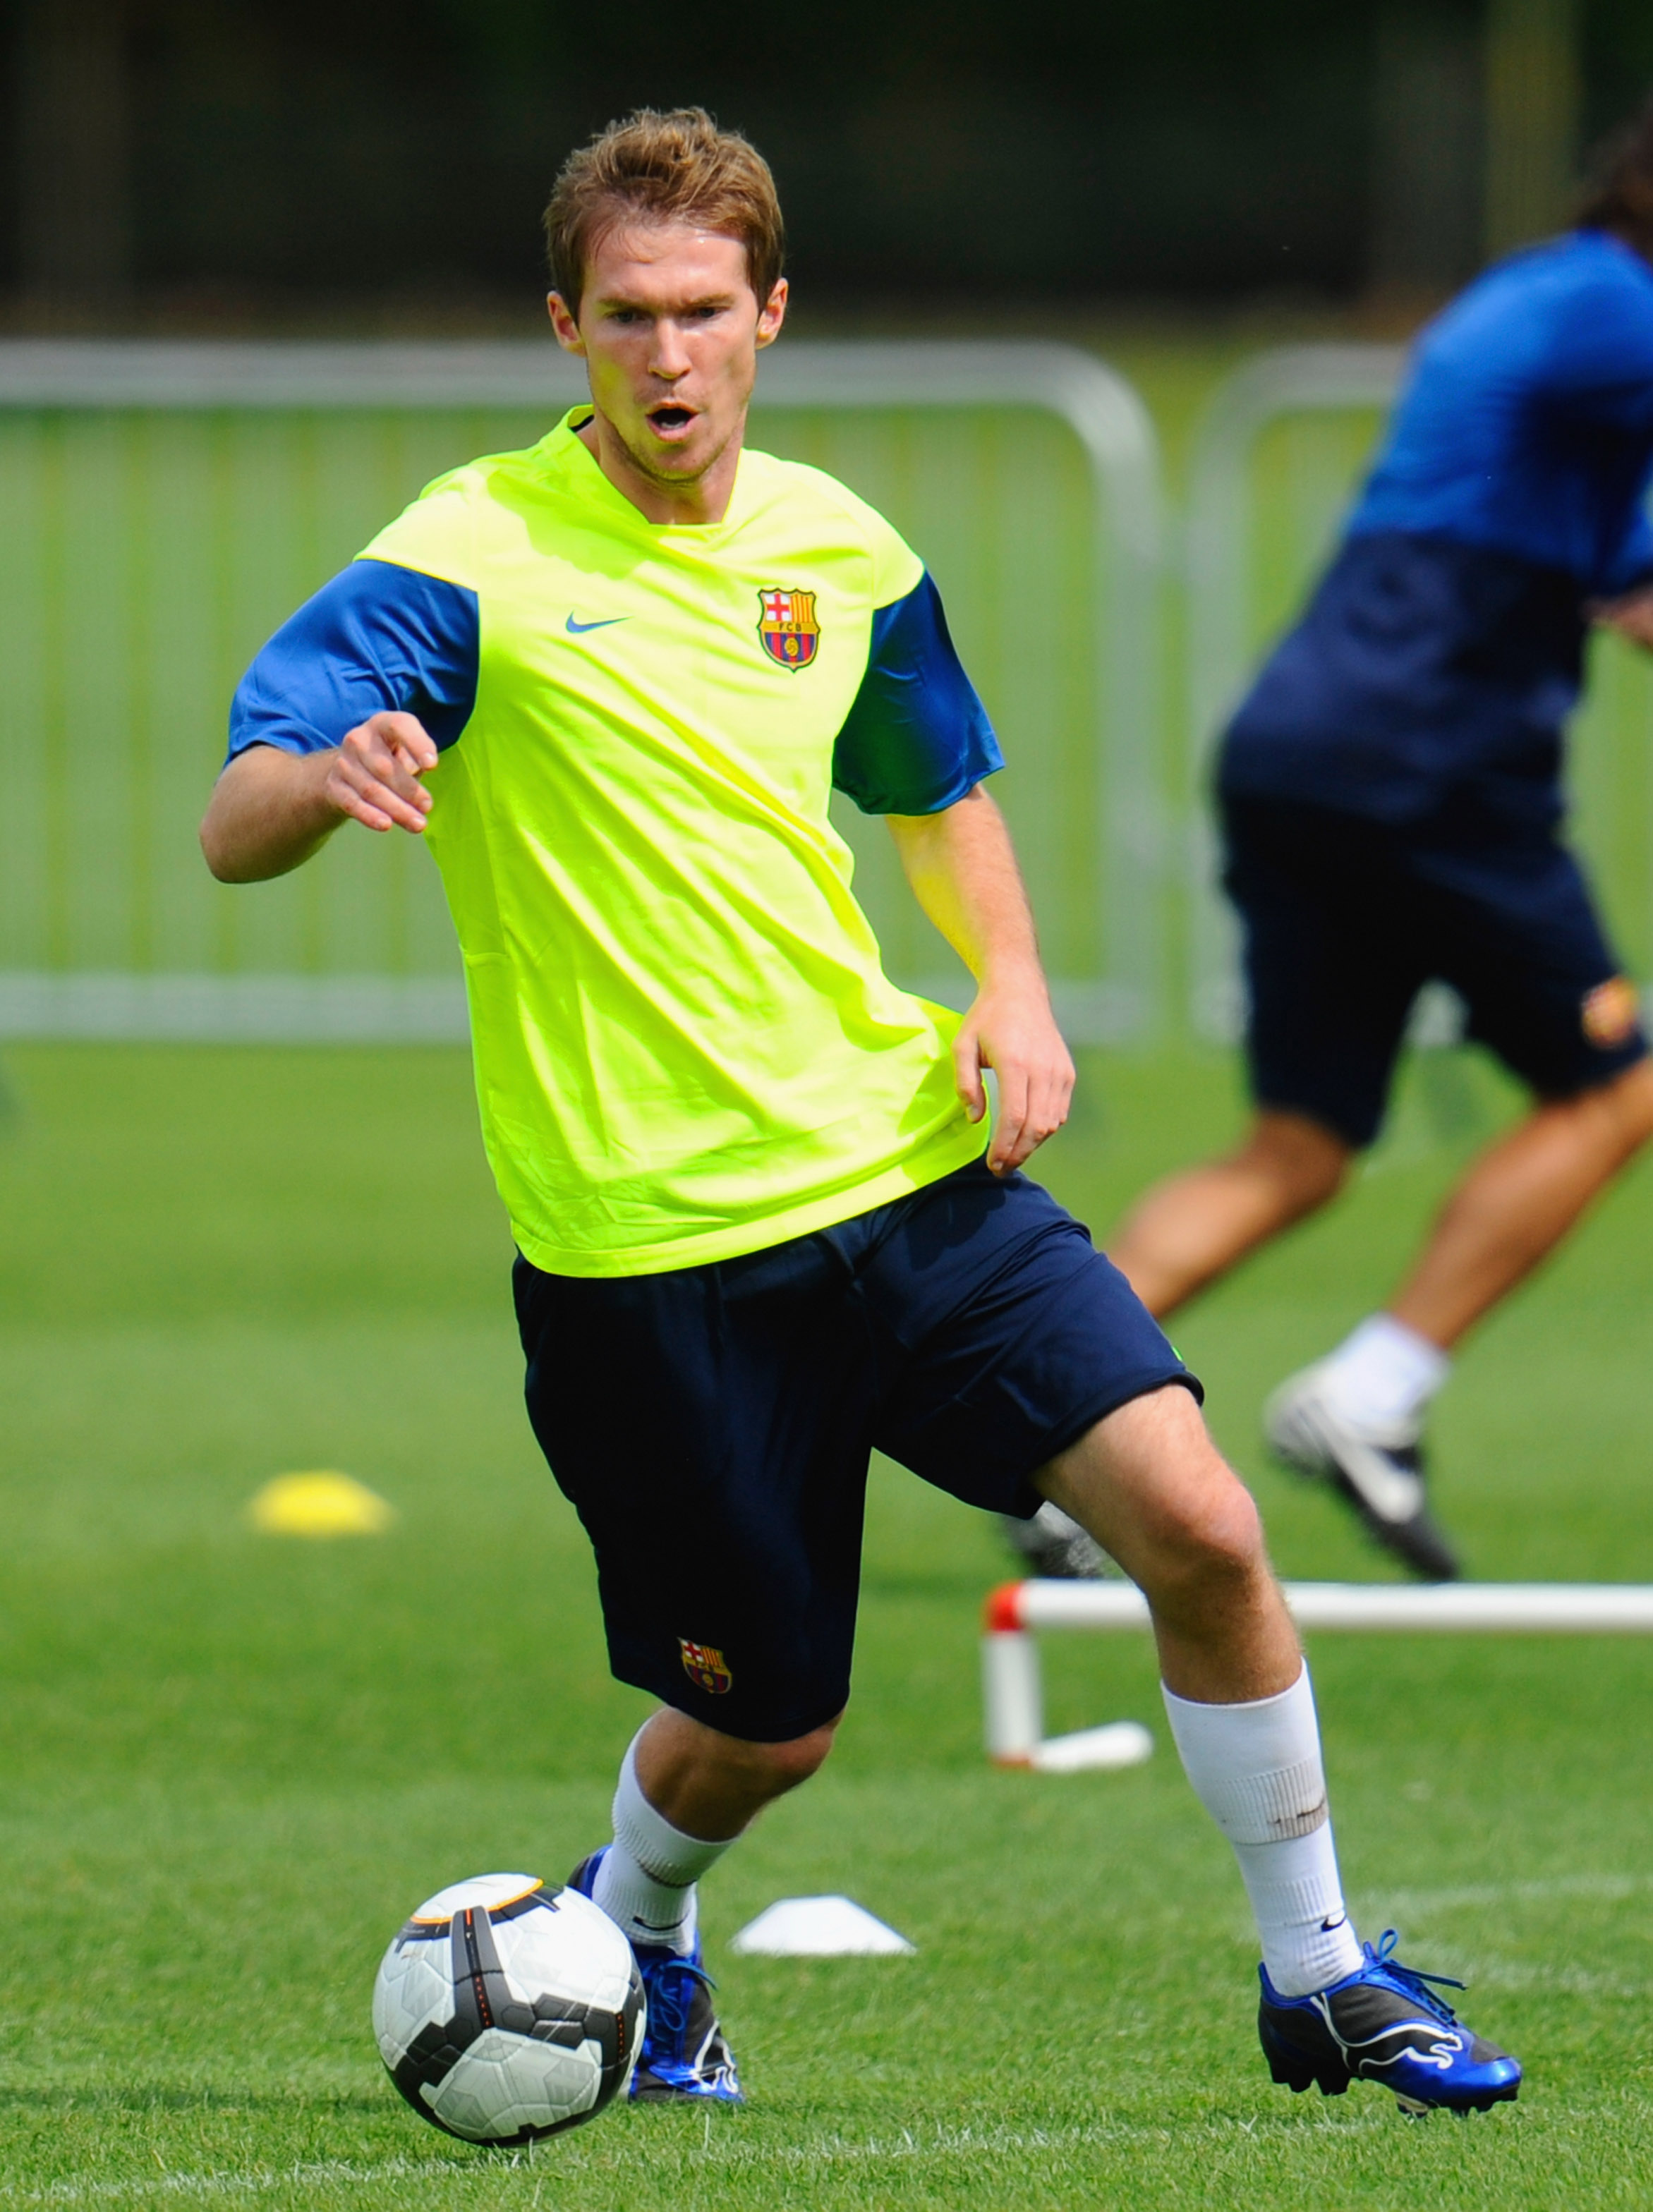 No Love For Hleb!